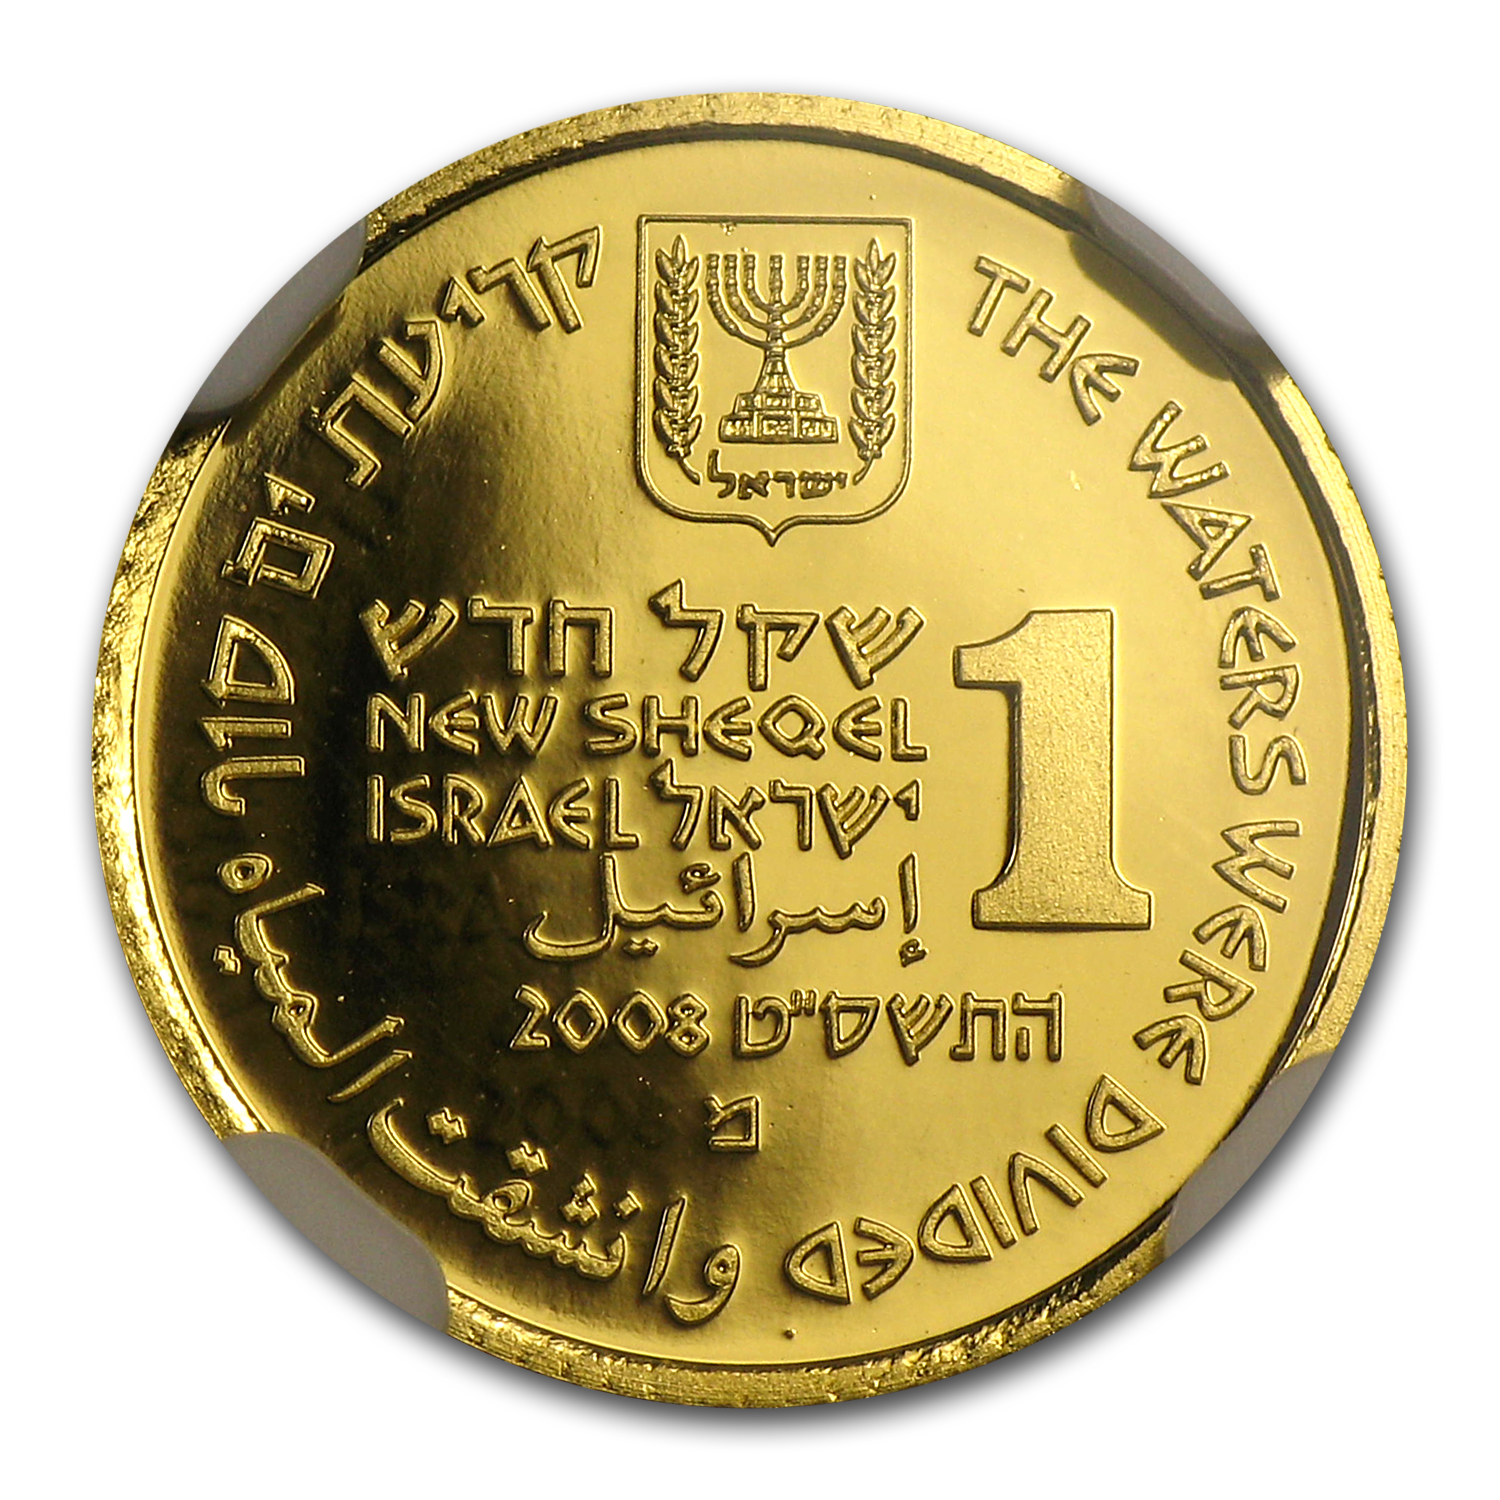 2008 Israel Parting of the Sea Smallest Gold Coin PF-70 UCAM NGC